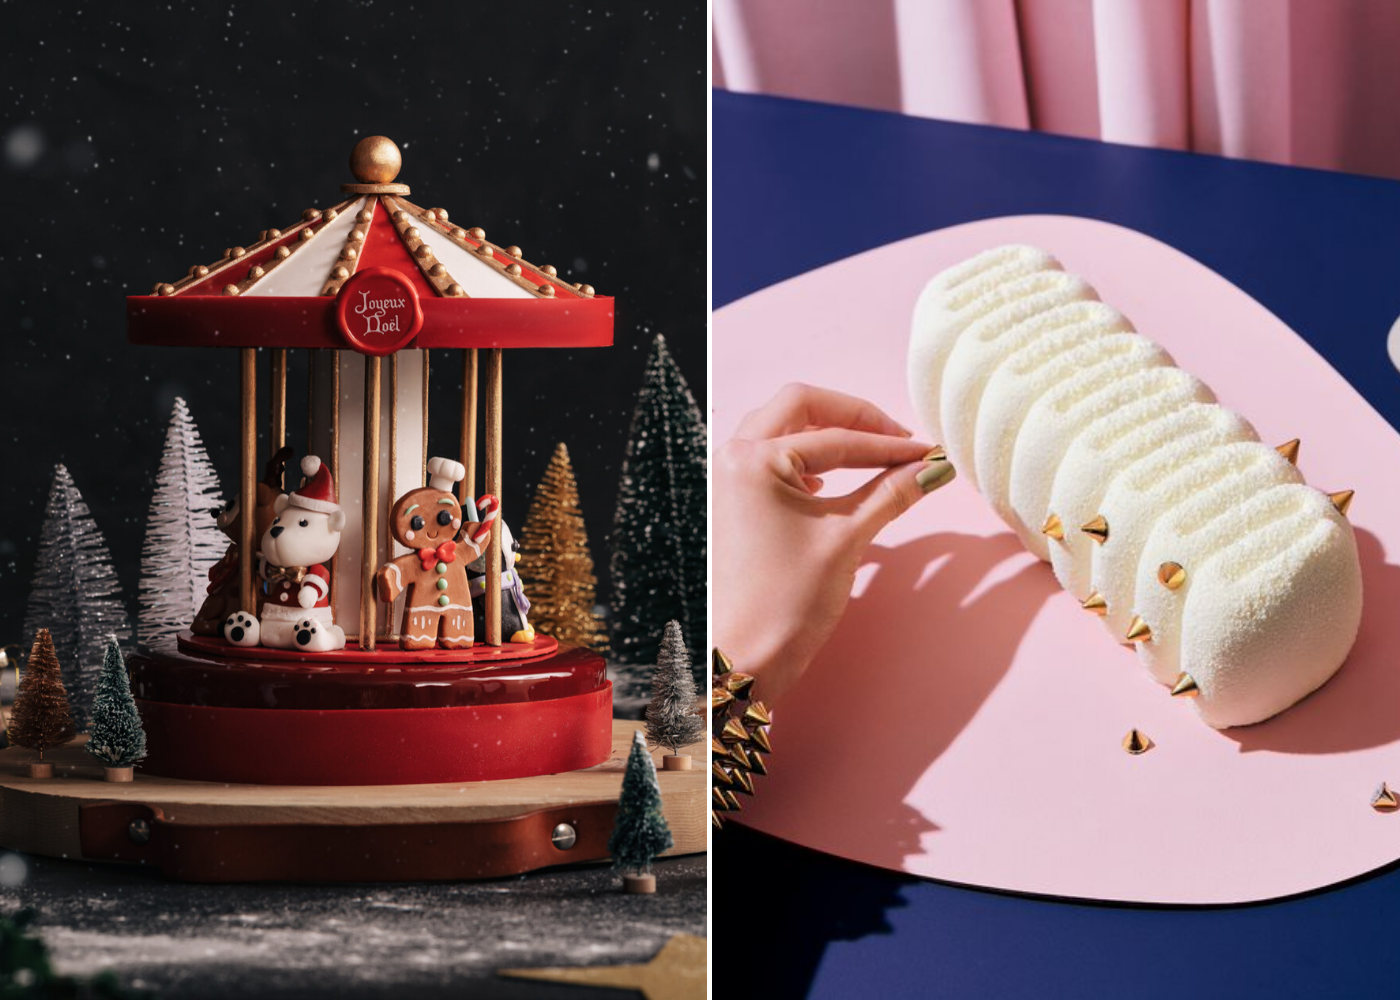 The best Christmas cakes in town: Where to get that festive sugar rush